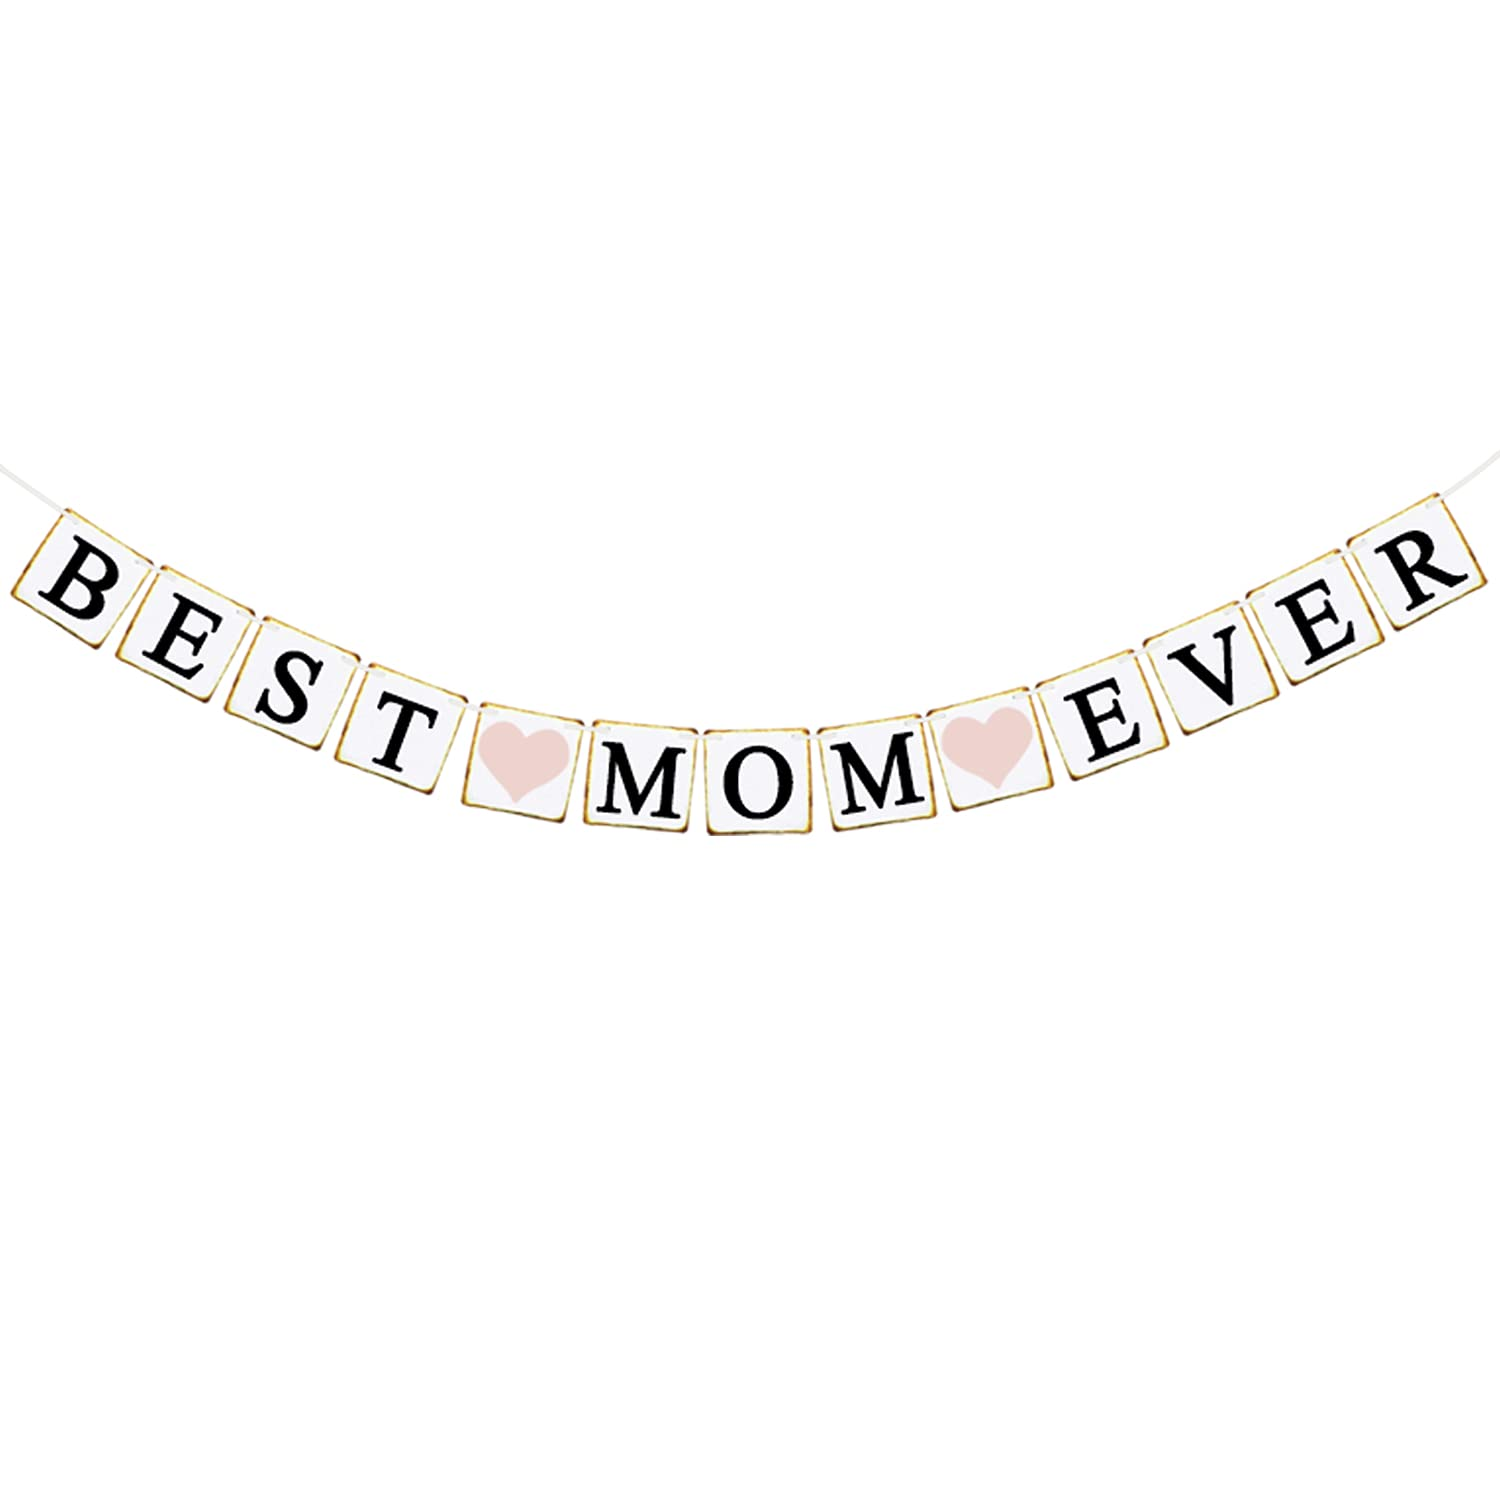 JOZON Best Mom Ever Banner Mother's Day Bunting Banner Garland with Heart Signs for Mothers Day Party Decorations Best Mom Ever Decor for Mantle Fireplace Wall Party Supplies